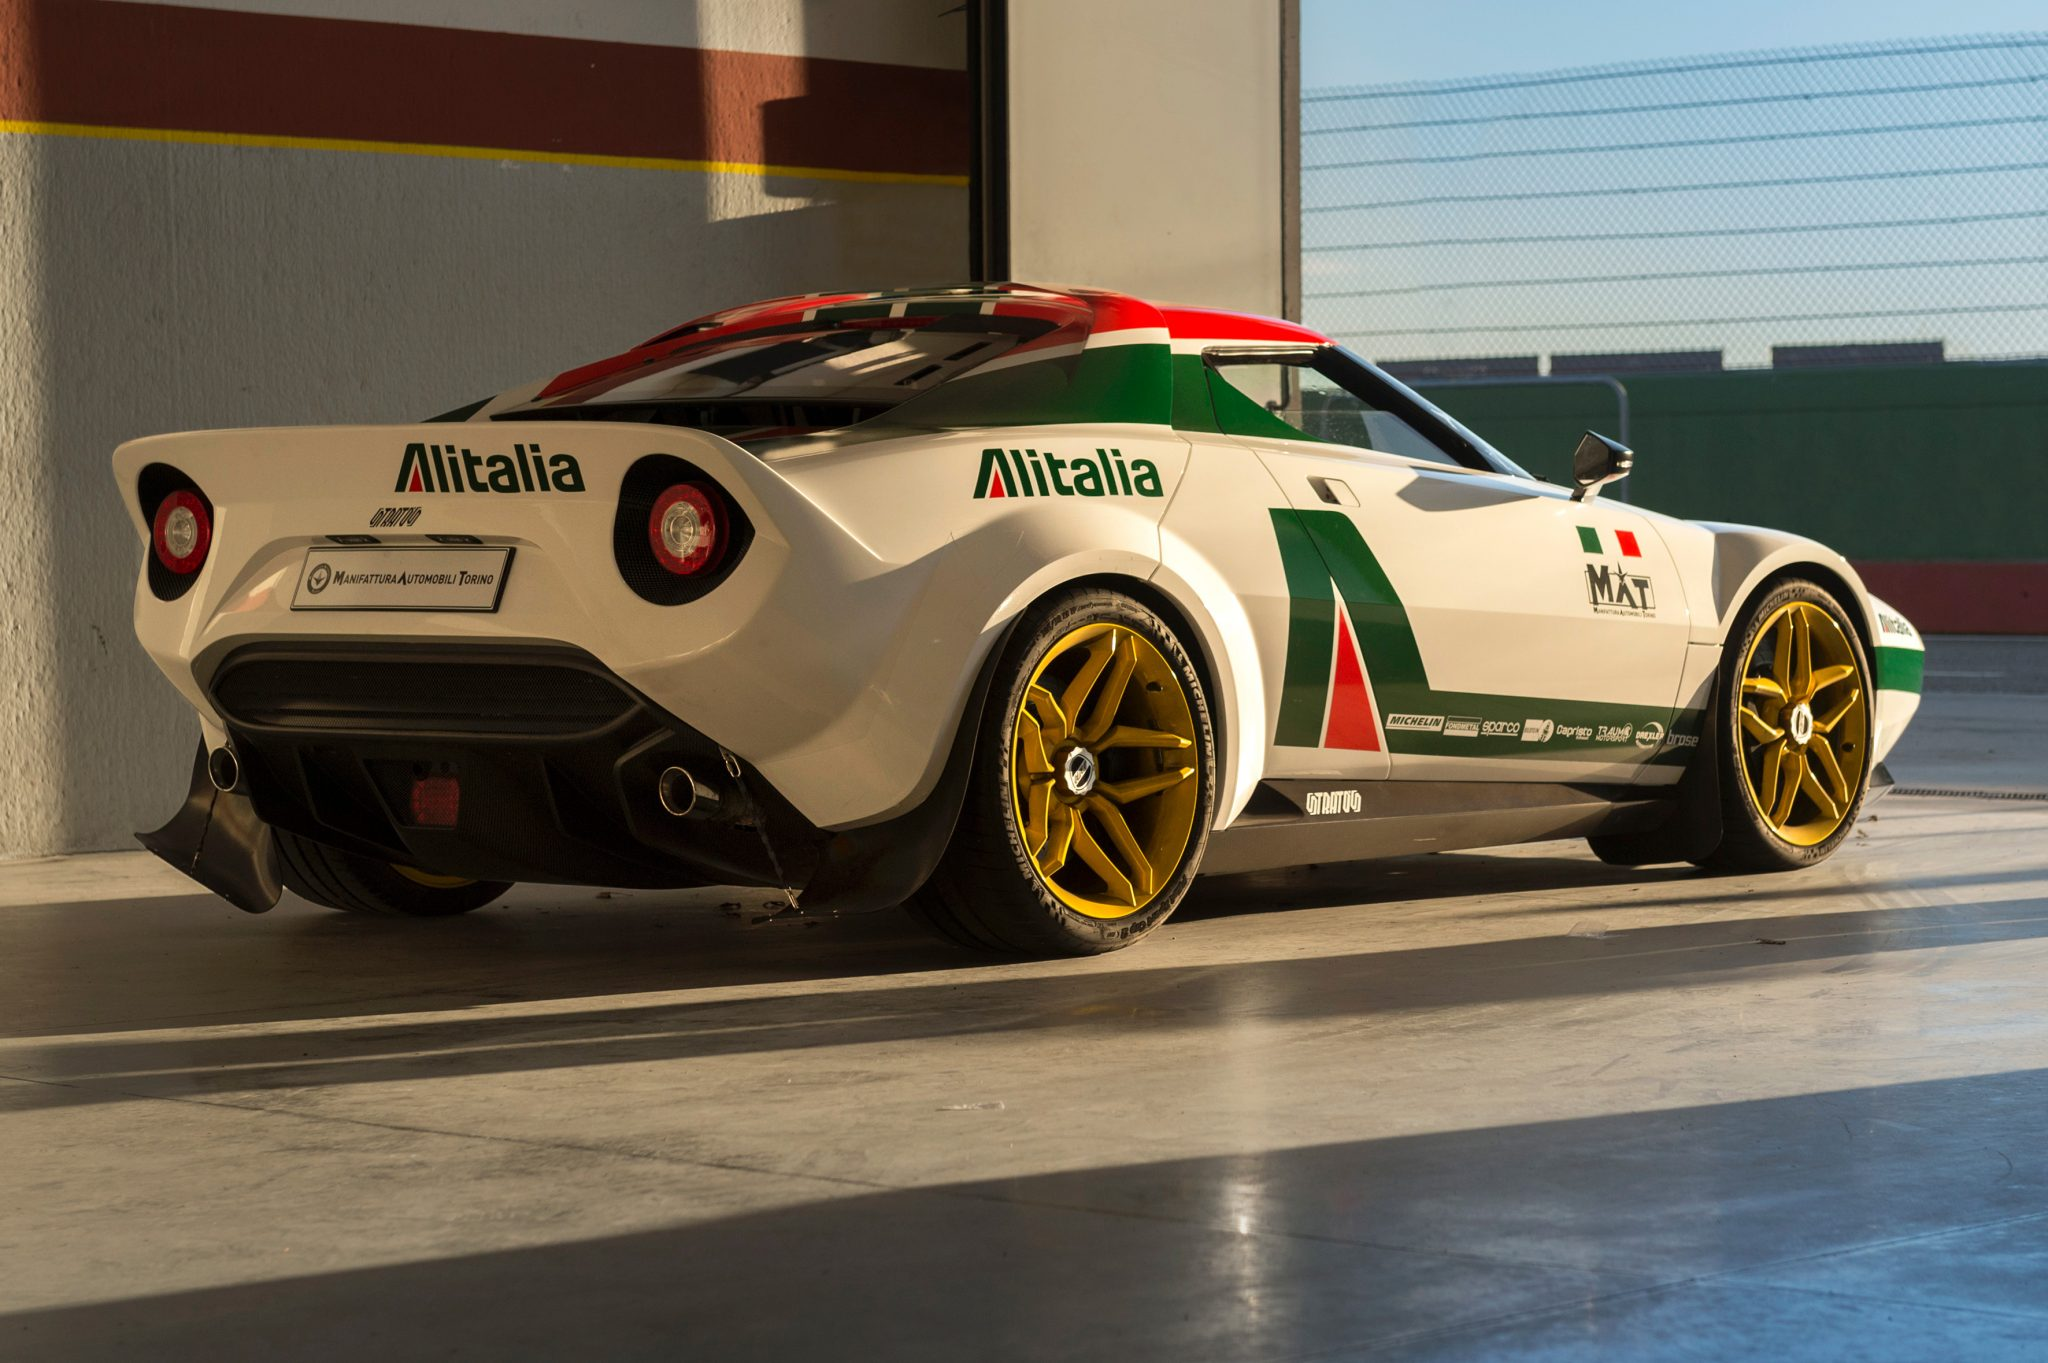 New Stratos, new legend